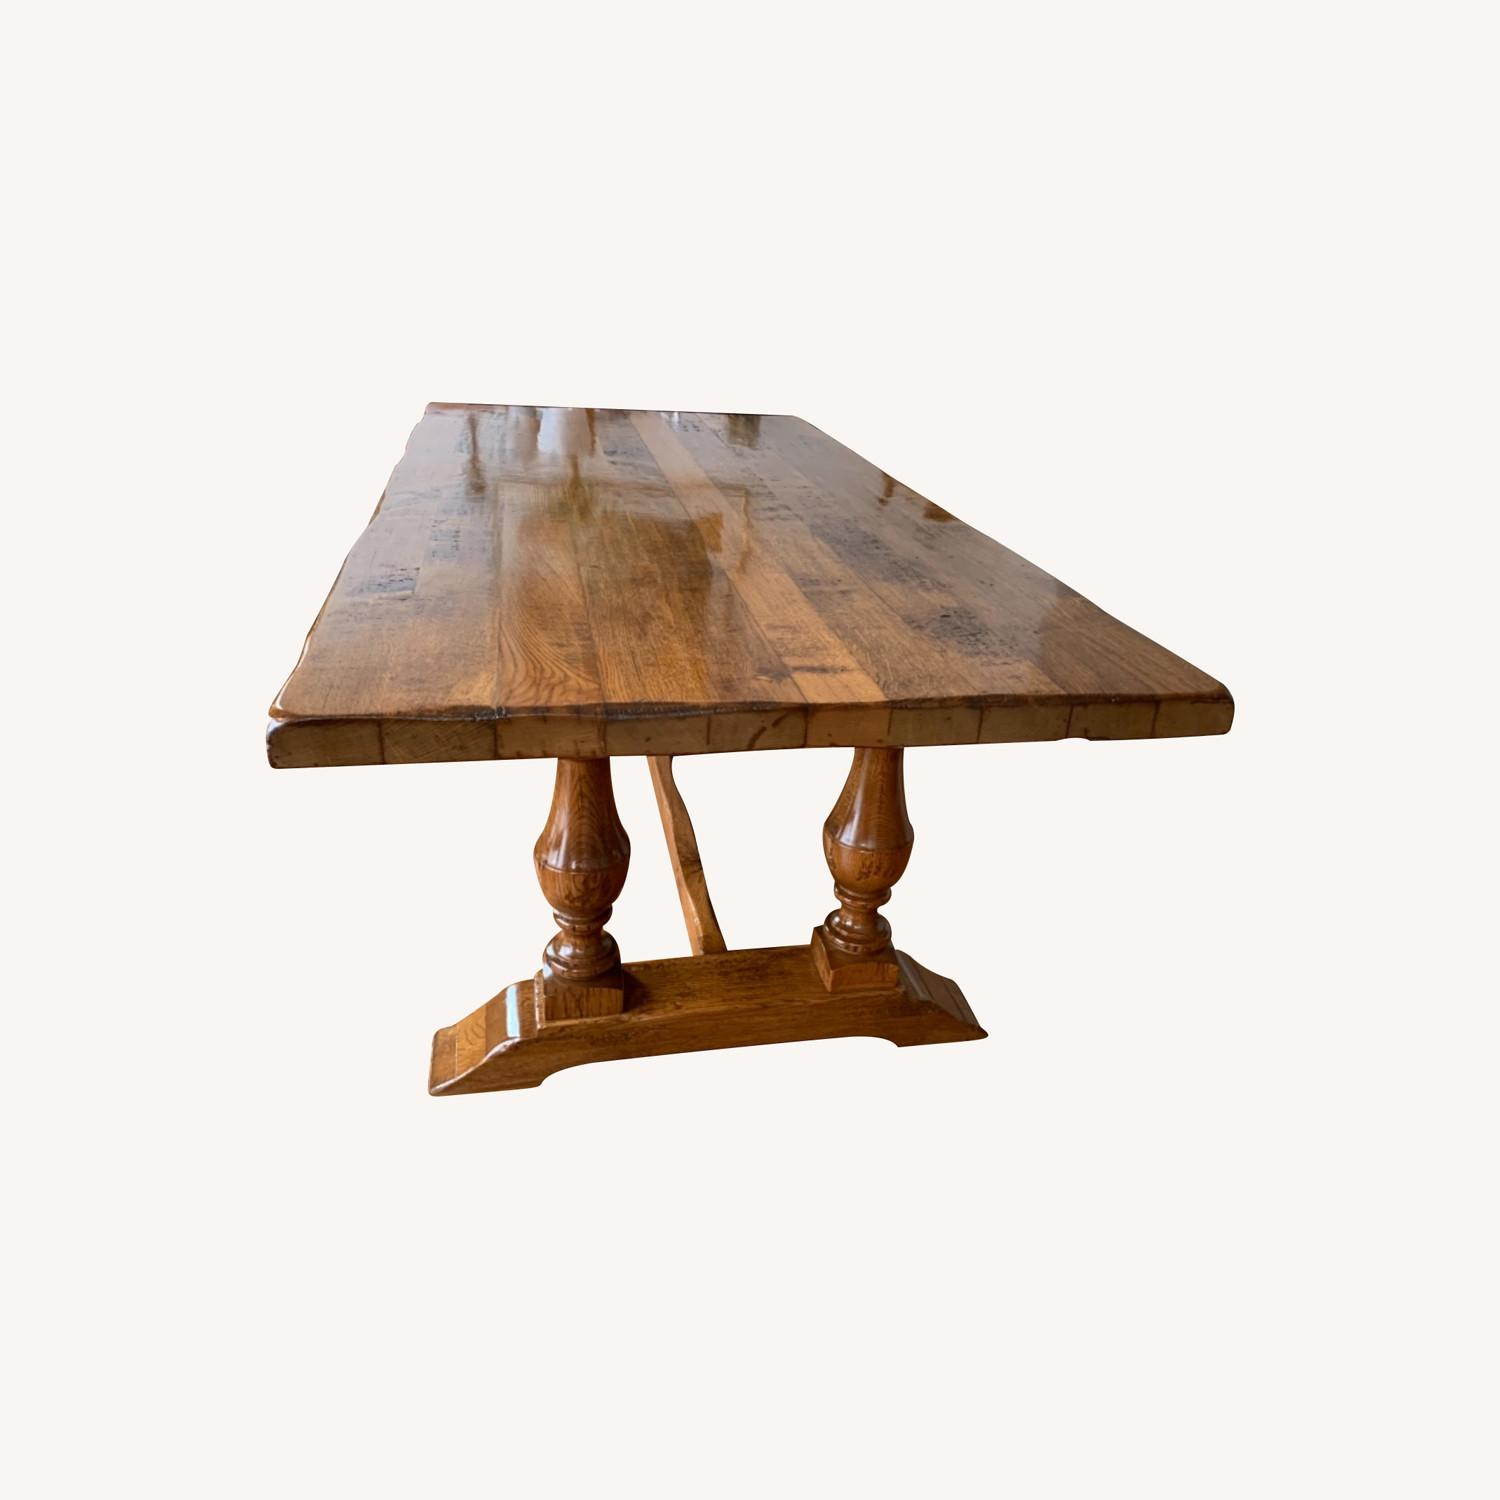 Imported French Rustic Dining Table - image-0